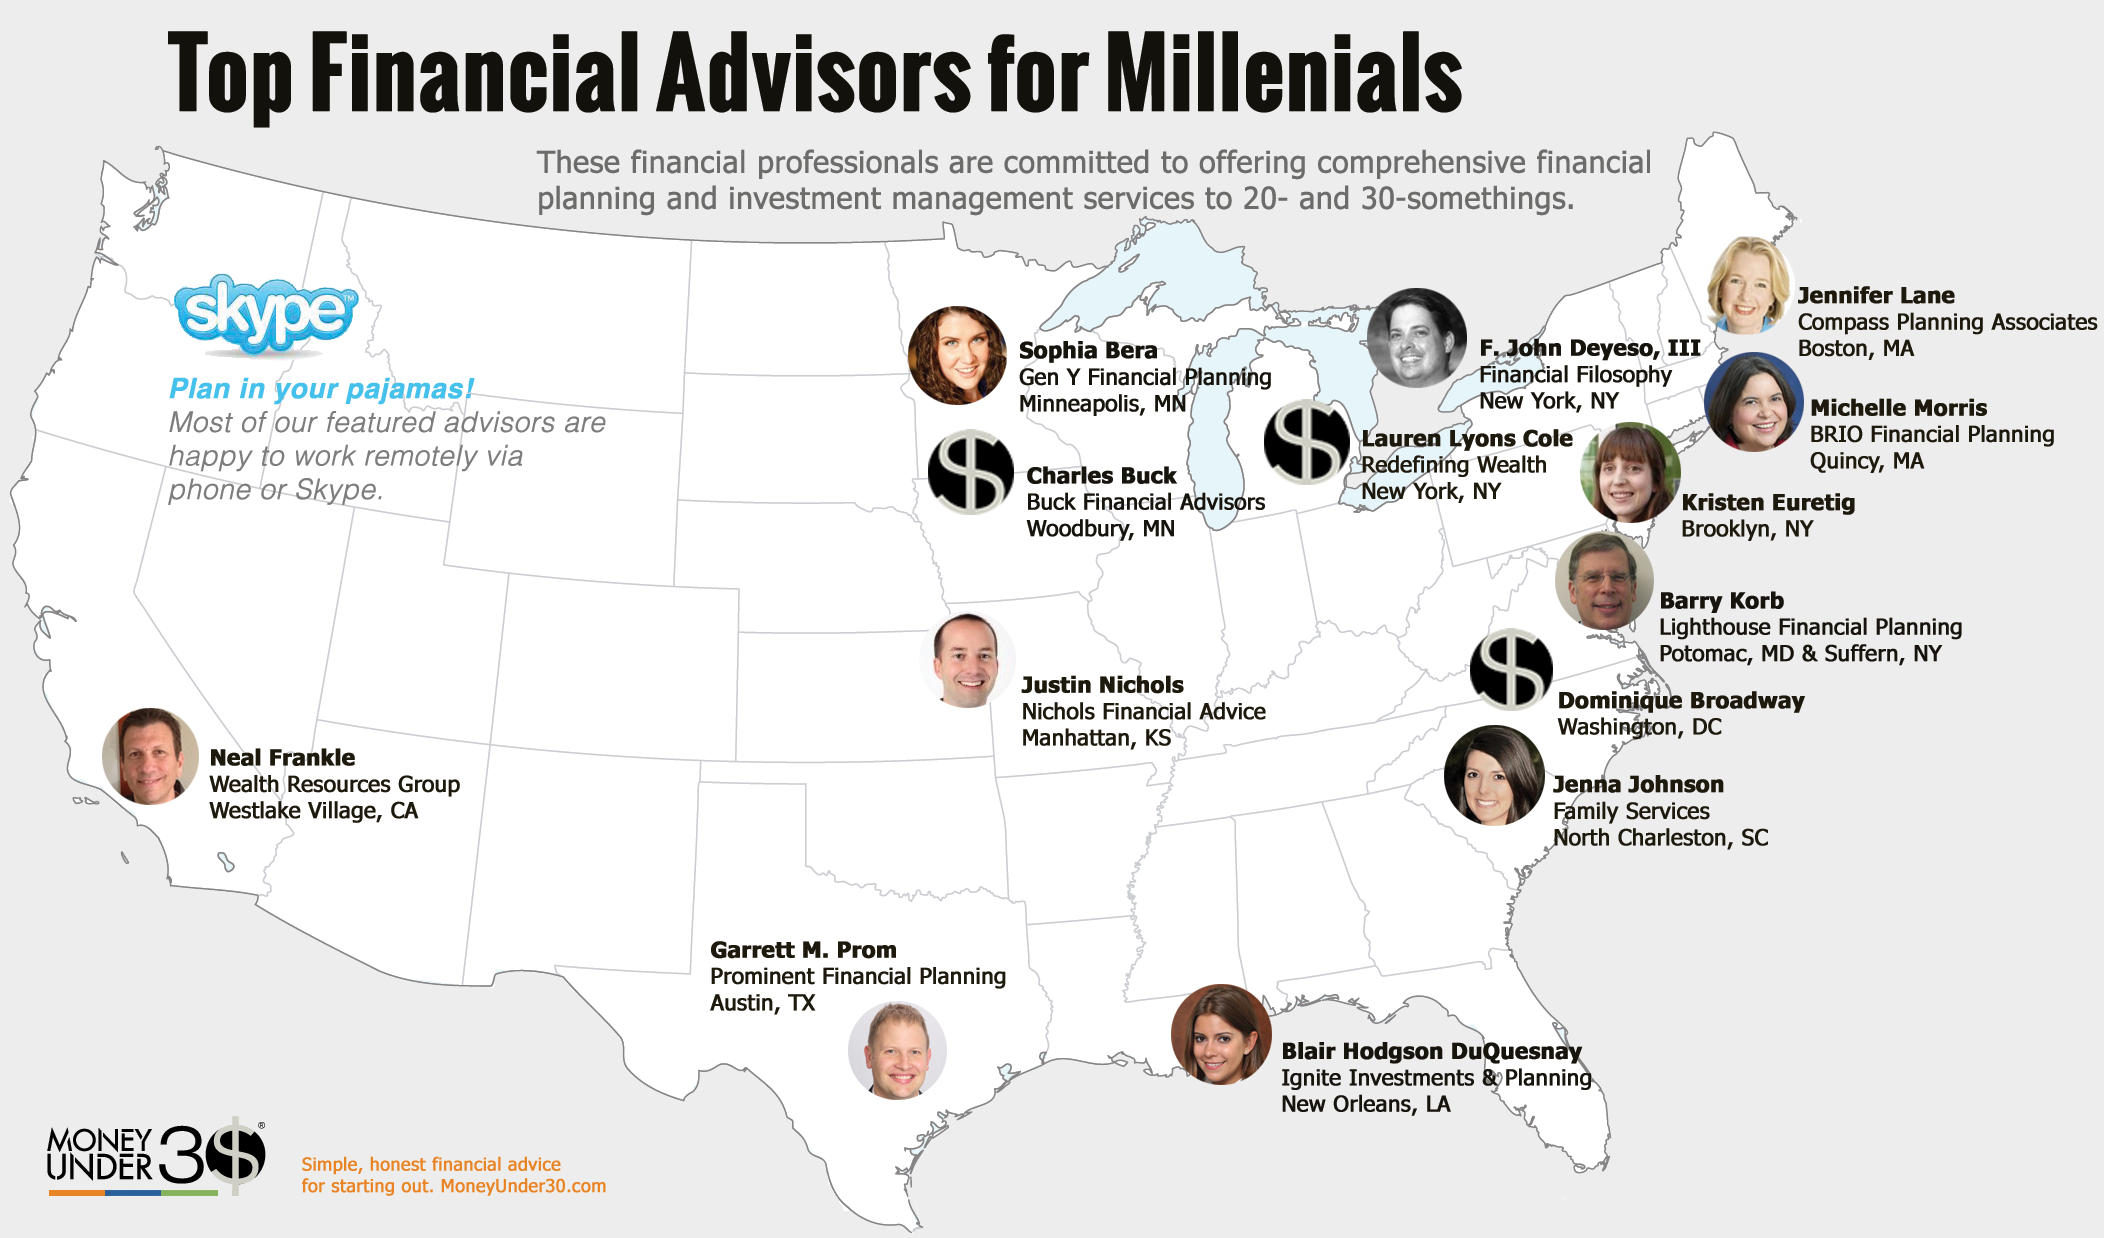 Top financial advisors for millenials: These professionals offer affordable financial advice to young investors.